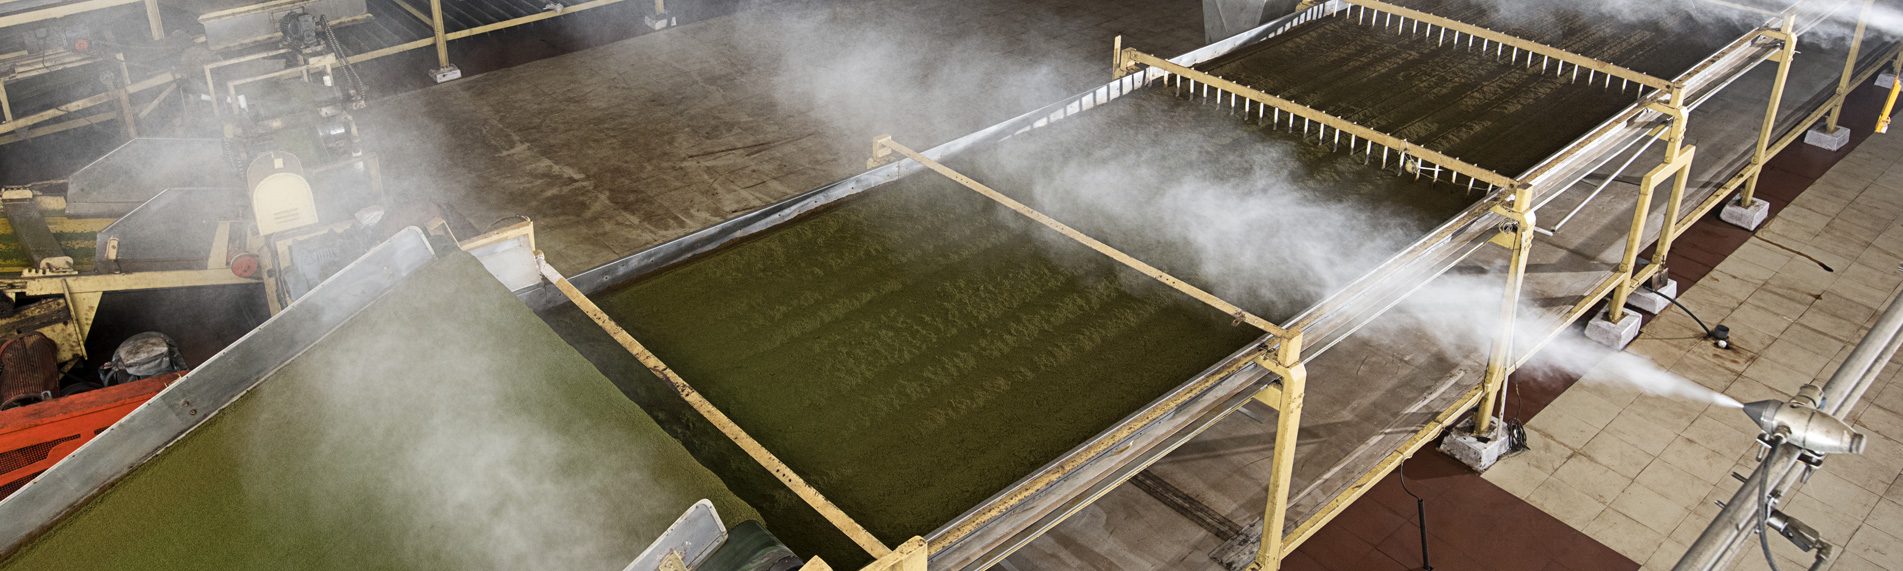 Tea production humidification & humidity control